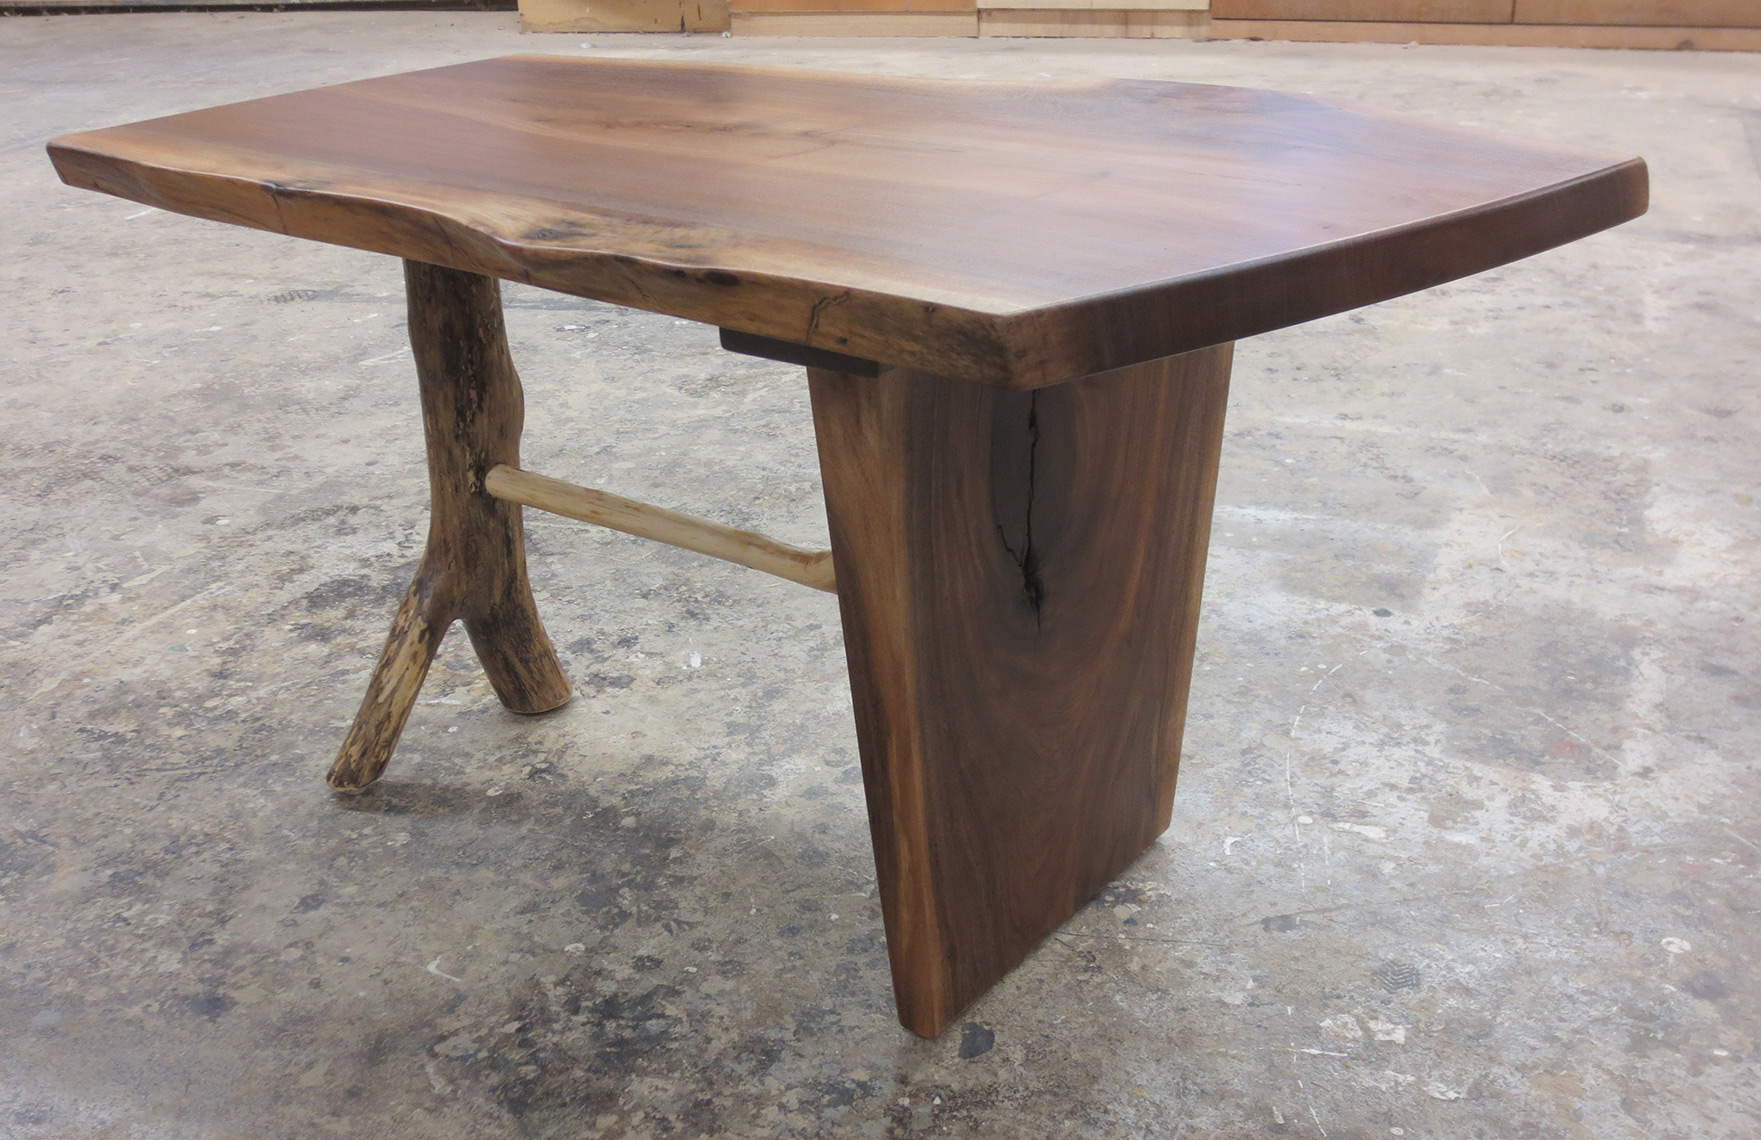 new jersey custom wood furniture-walnut live edge, natural edge free form edge, rustic  coffee table, rustic